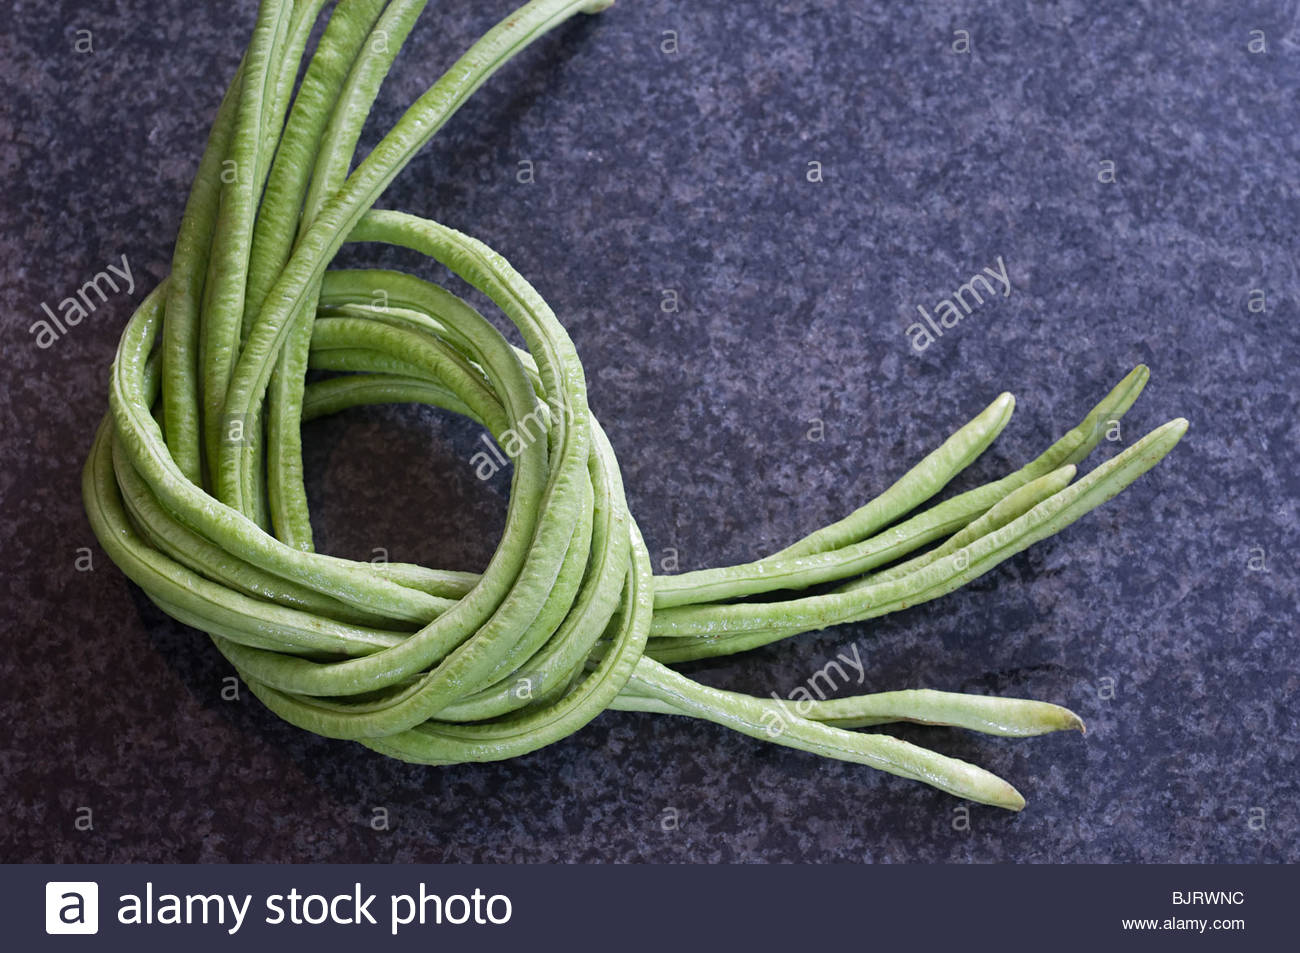 Beans tied together - Stock Image